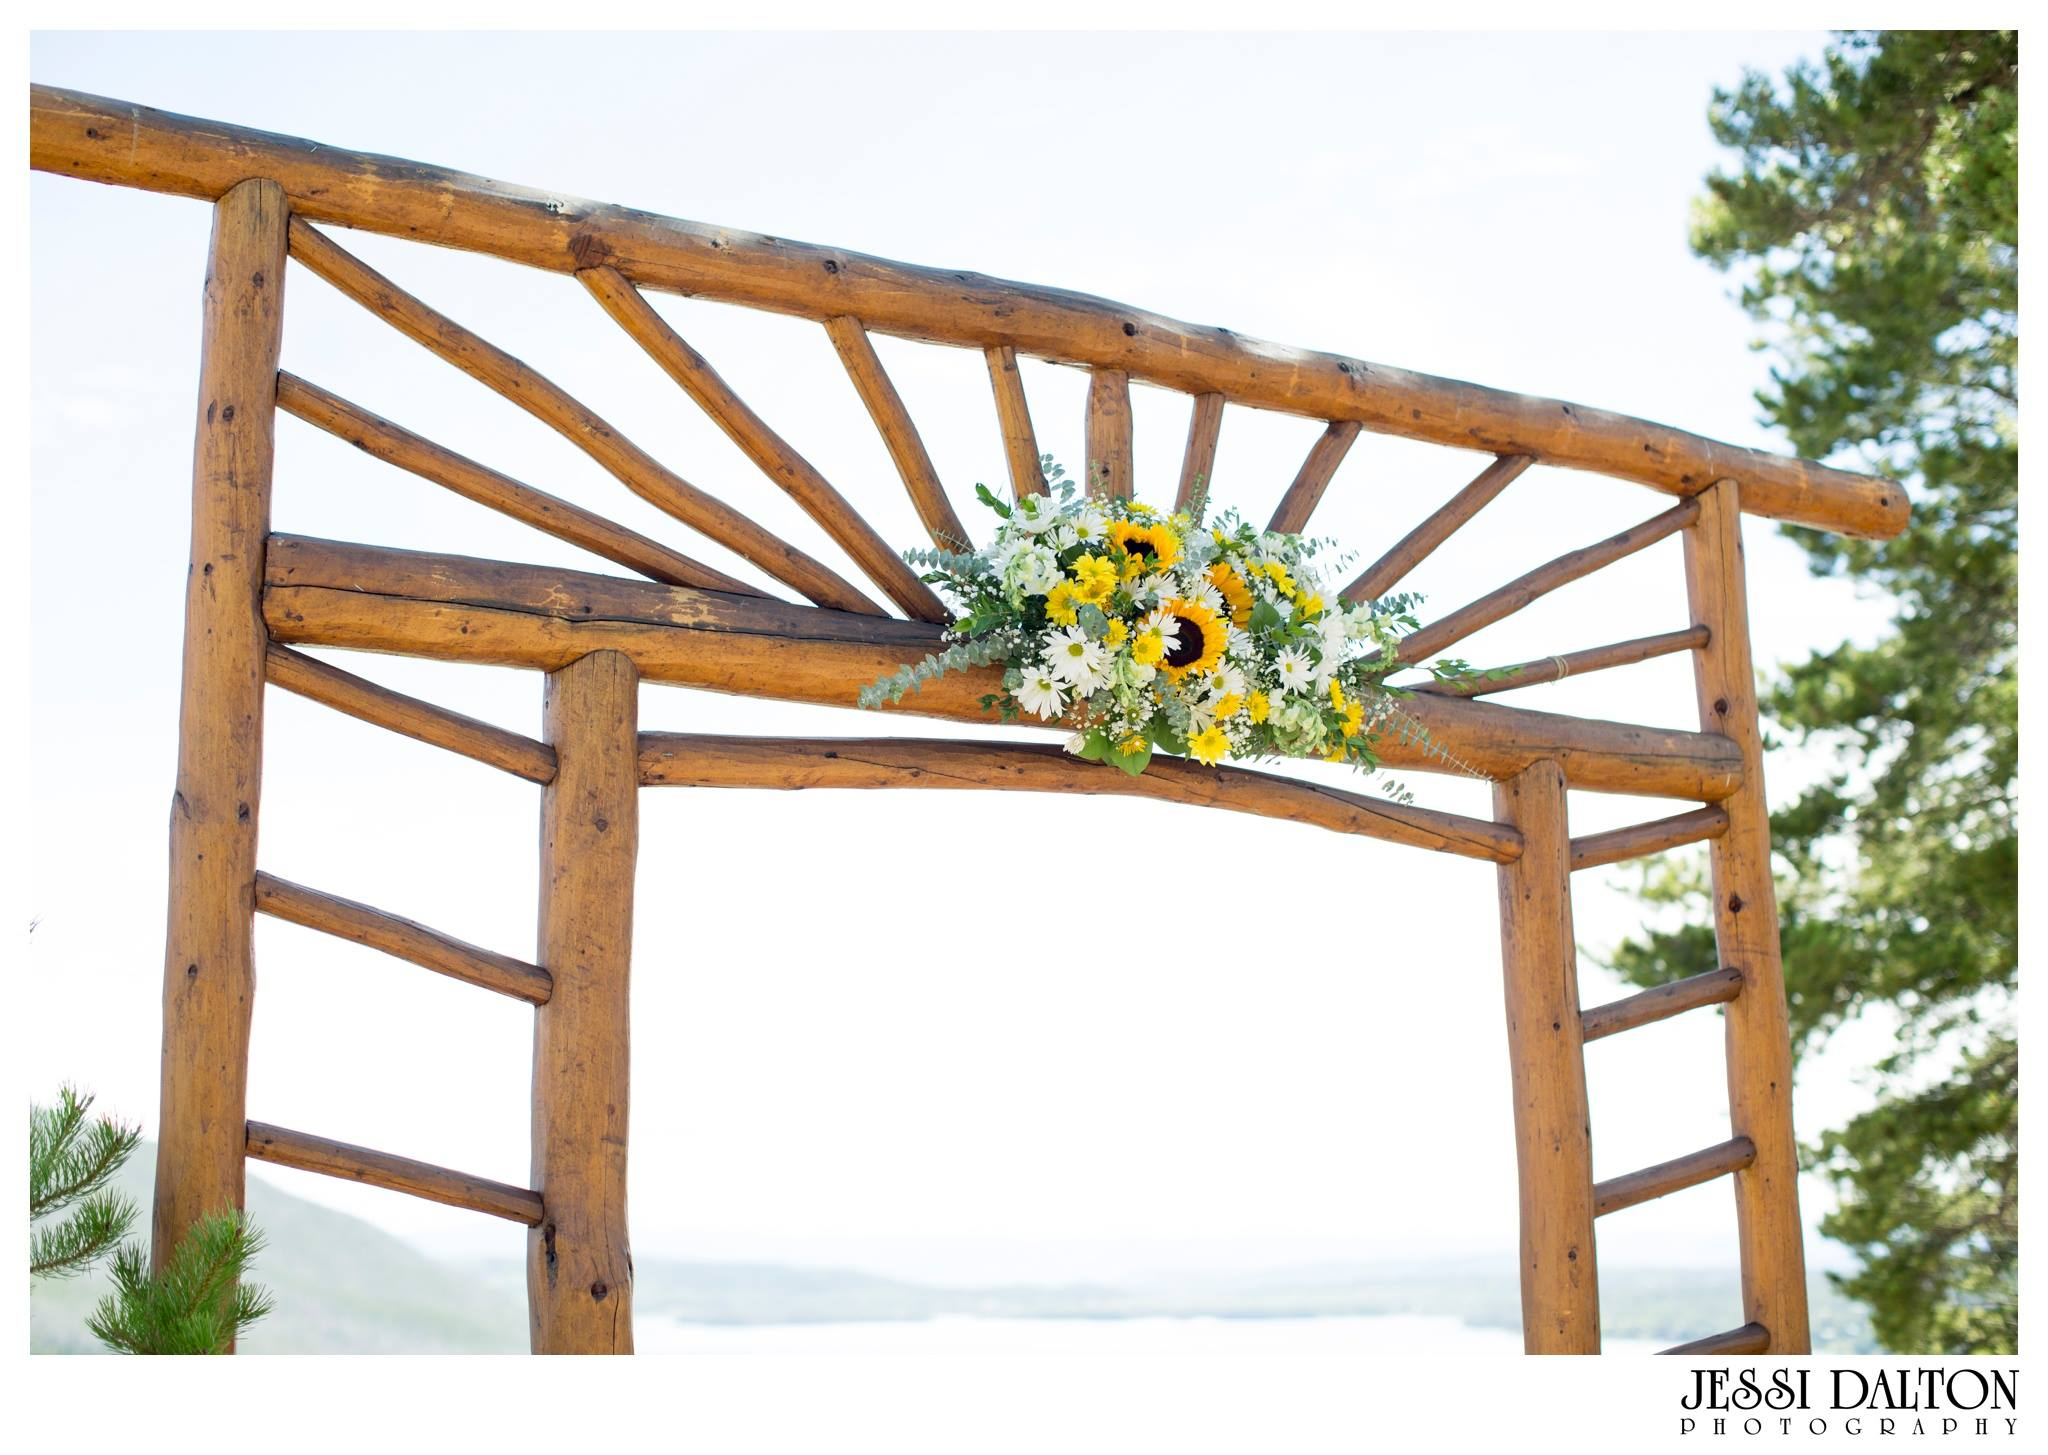 Arch design at Grand Lake Lodge to go with the sunflower theme of the brides bouquet.